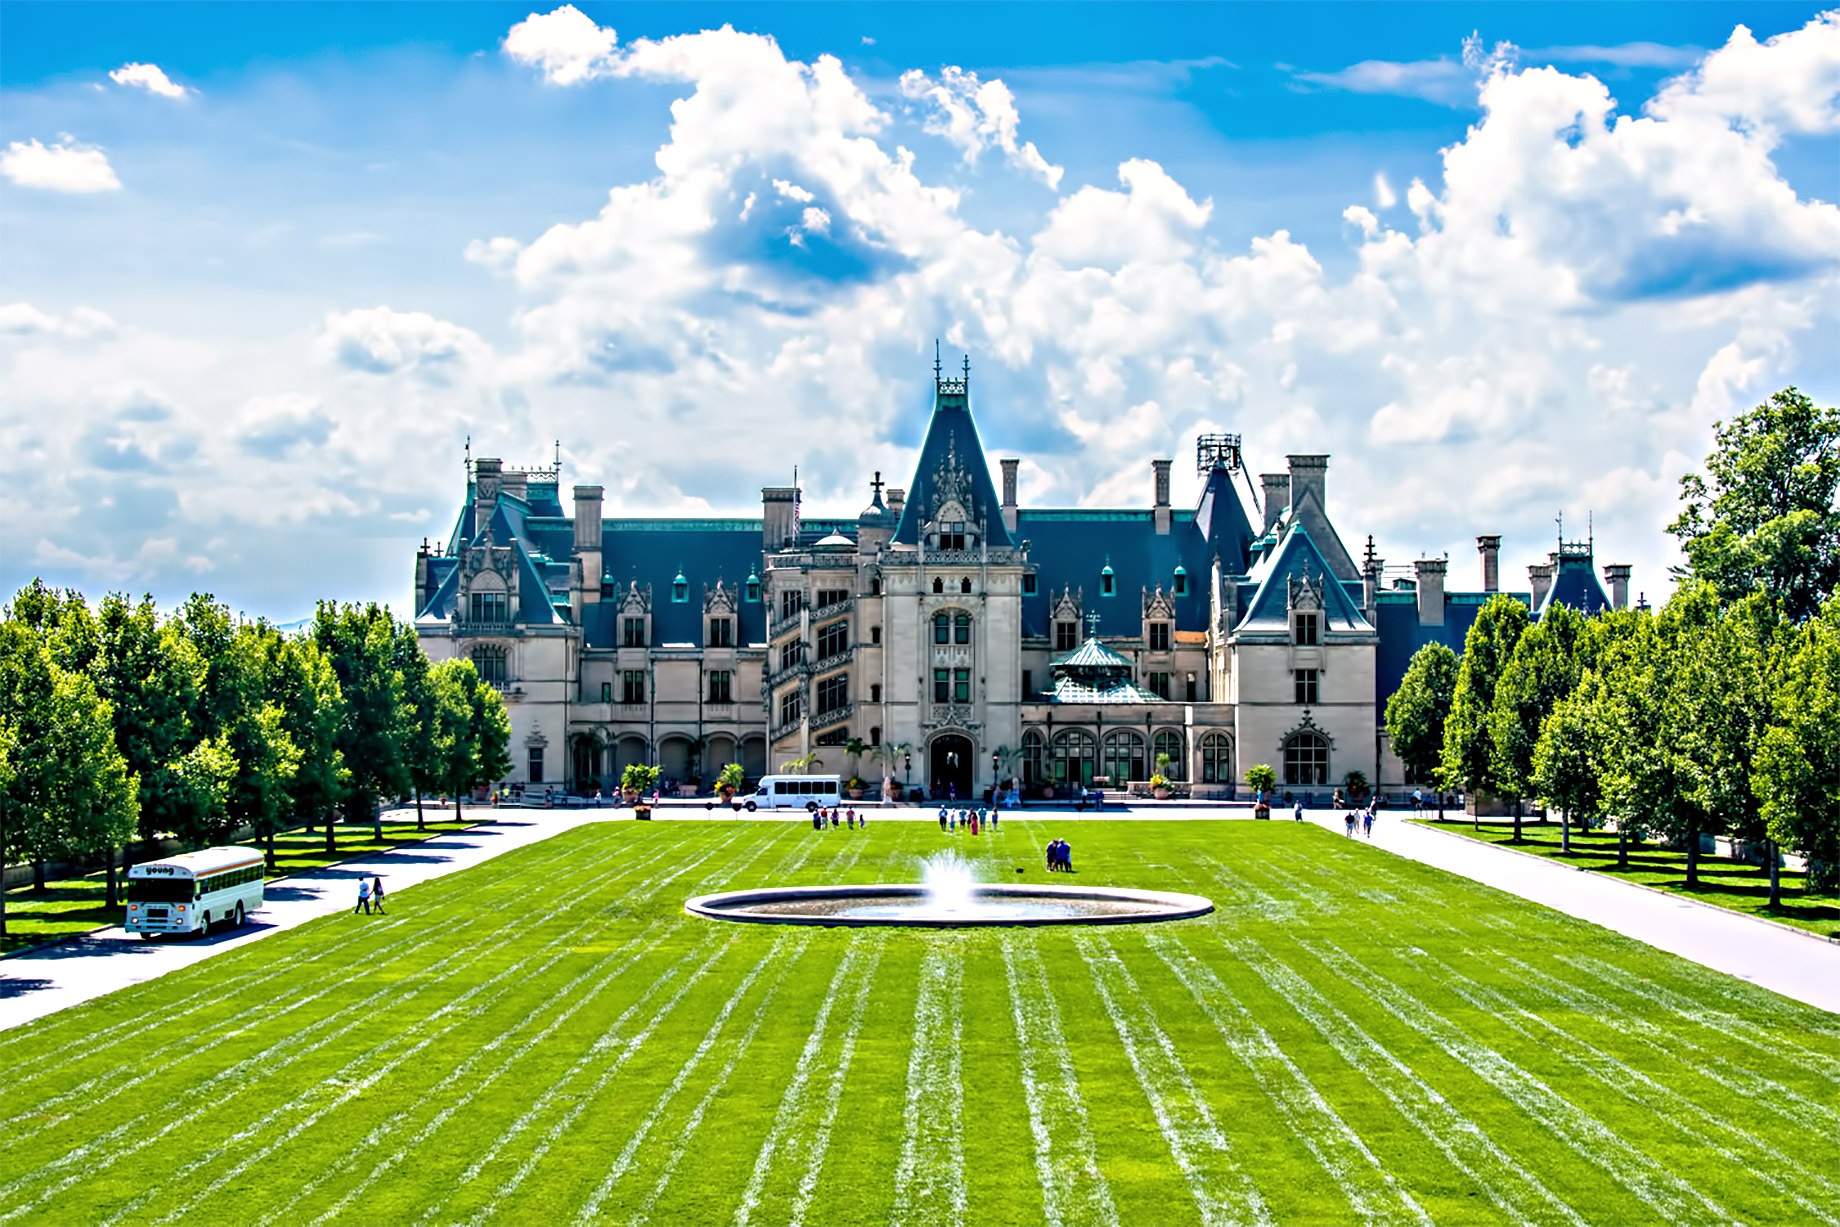 The Biltmore Estate - George Vanderbilt's Mansion is the Largest Privately-Owned Home in America